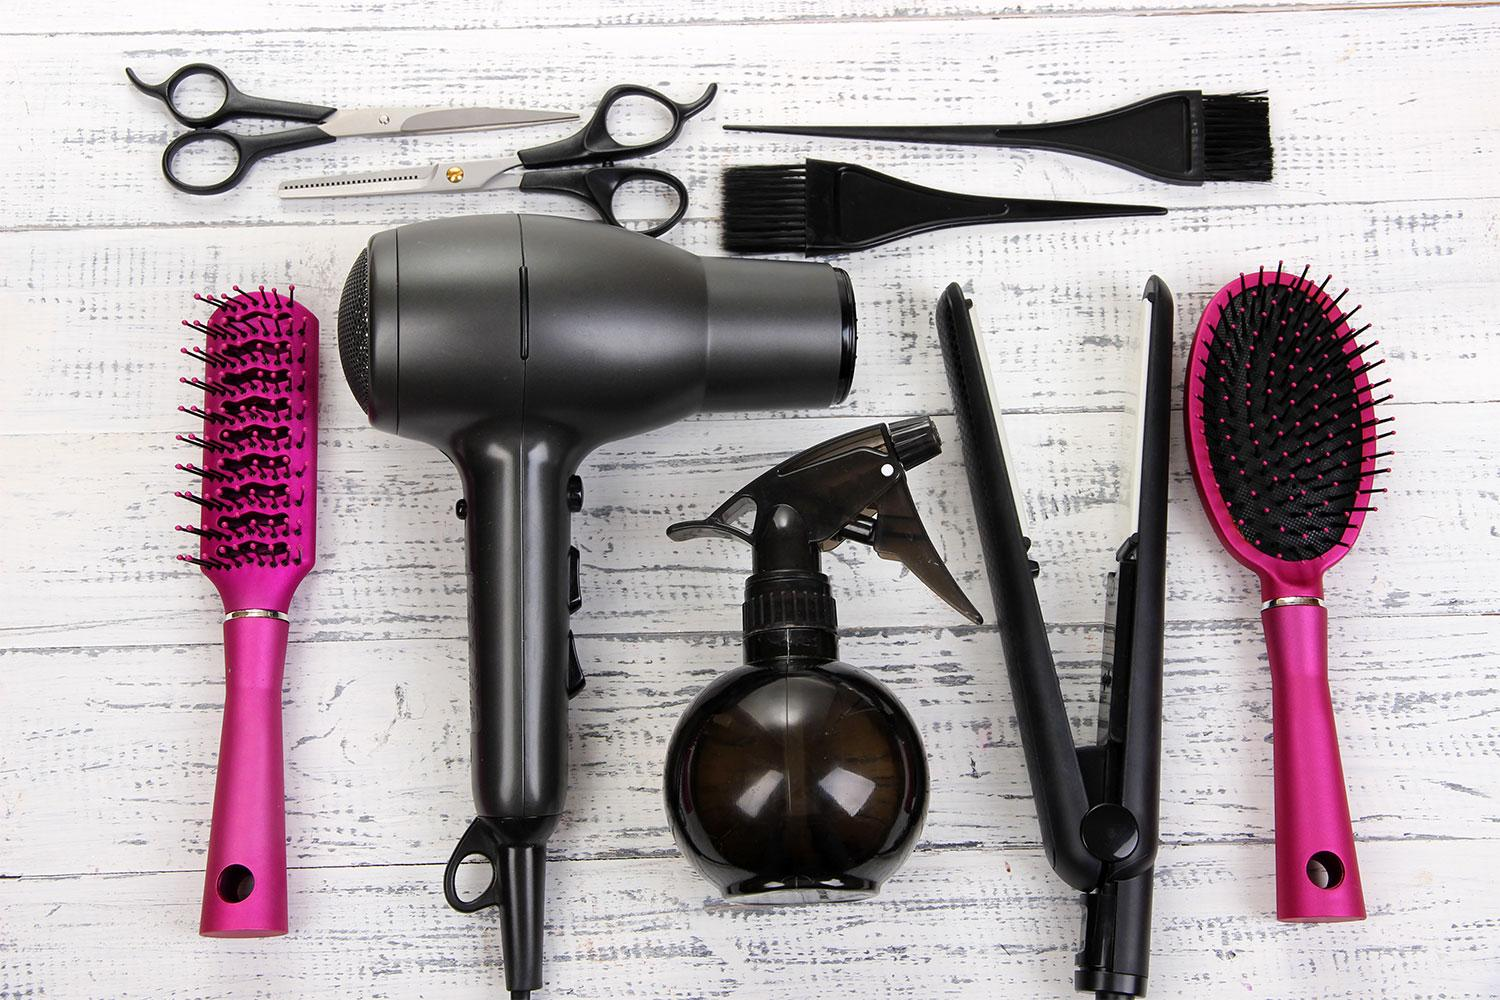 The Best Hair Styling Gadgets From The Dyson Hairdryers To